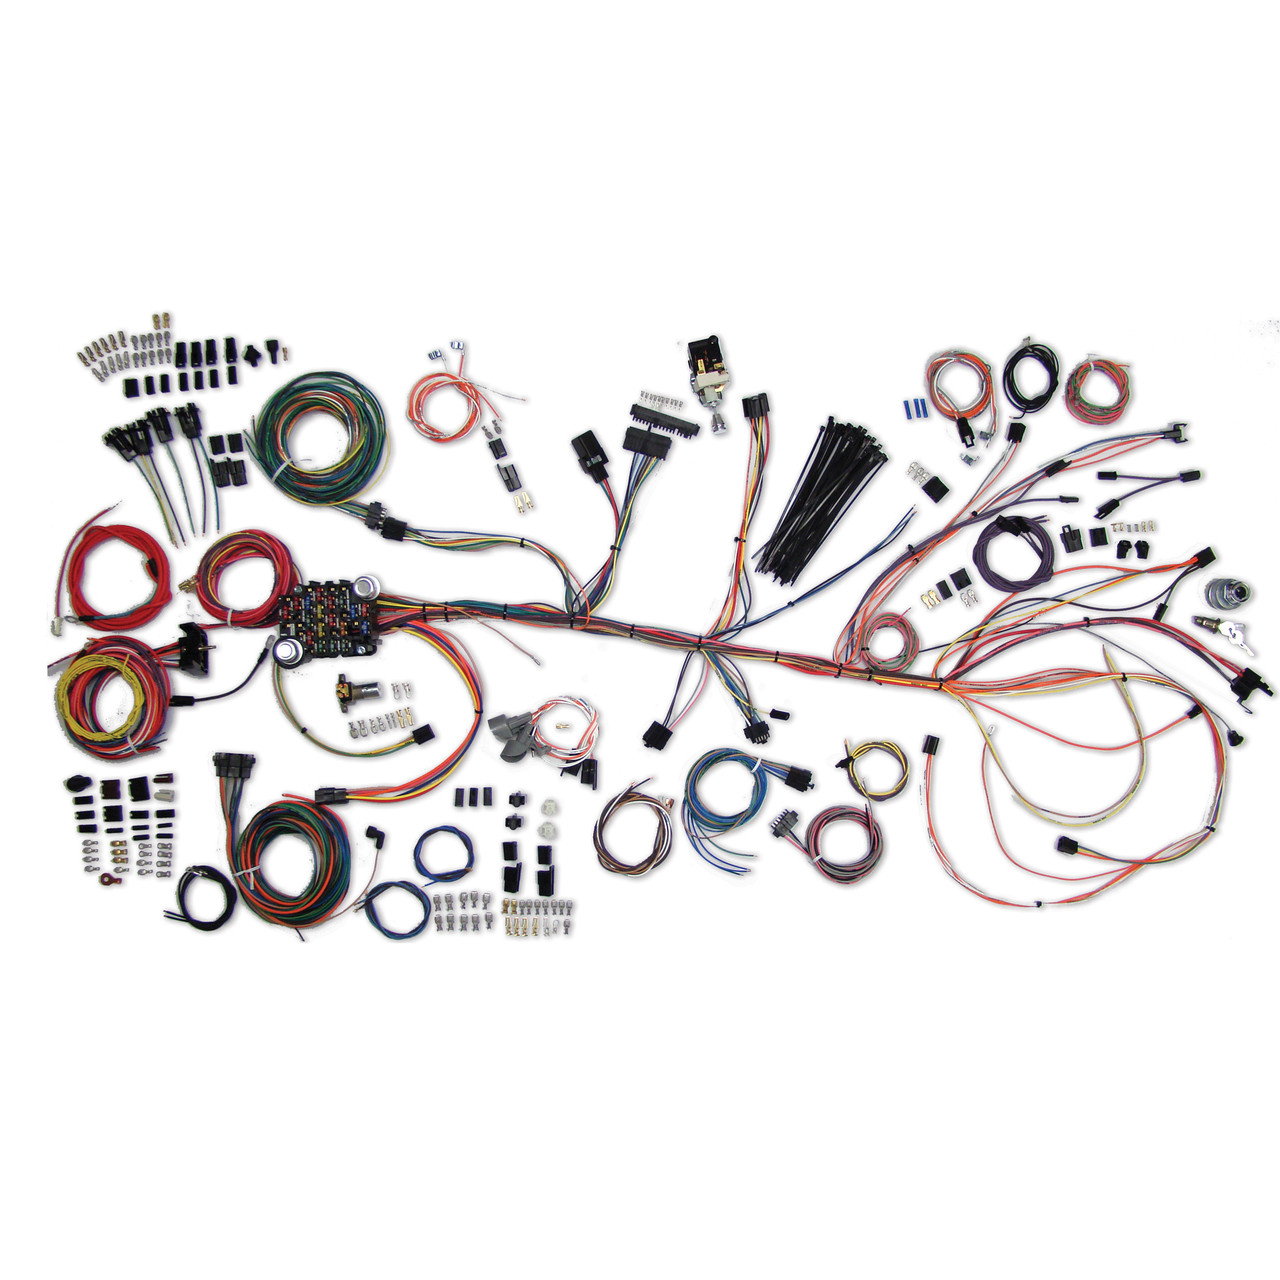 american autowire 1964 1967 chevrolet chevelle el camino classic aftermarket wiring kits american autowire toggle turn signal switch [ 1280 x 1280 Pixel ]